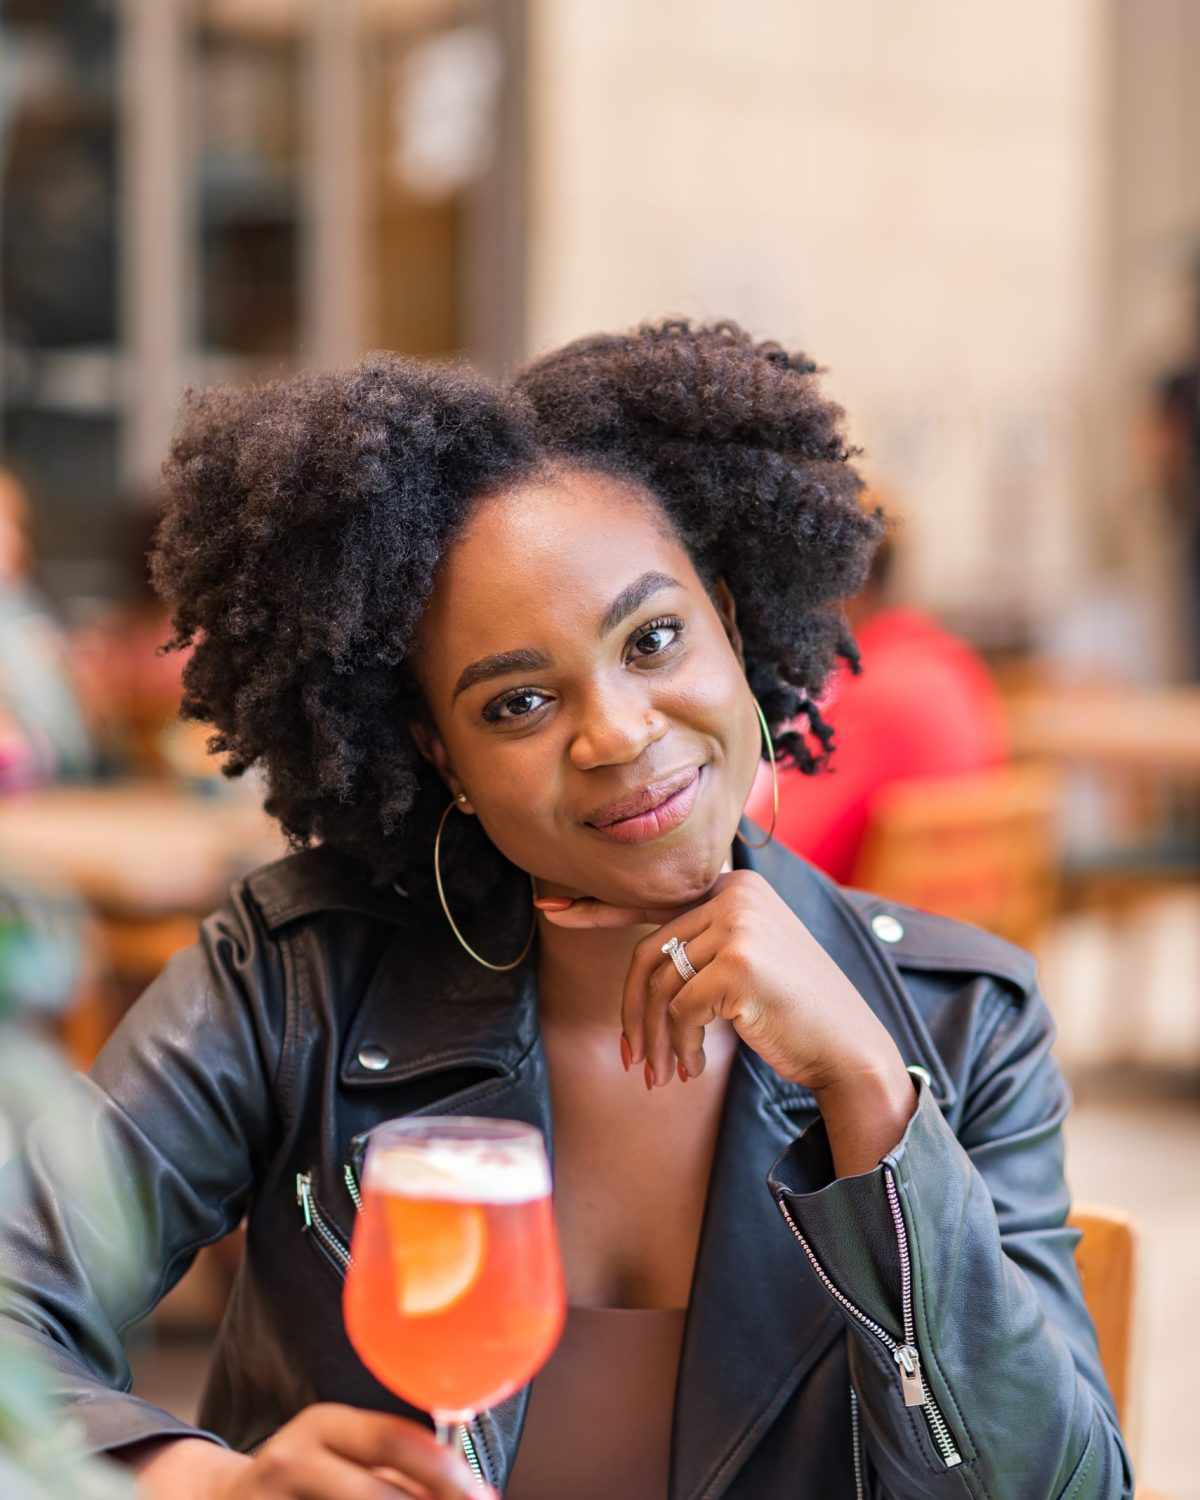 Ijeoma Kola at restaurant with cocktail, wearing leather jacket and black afro